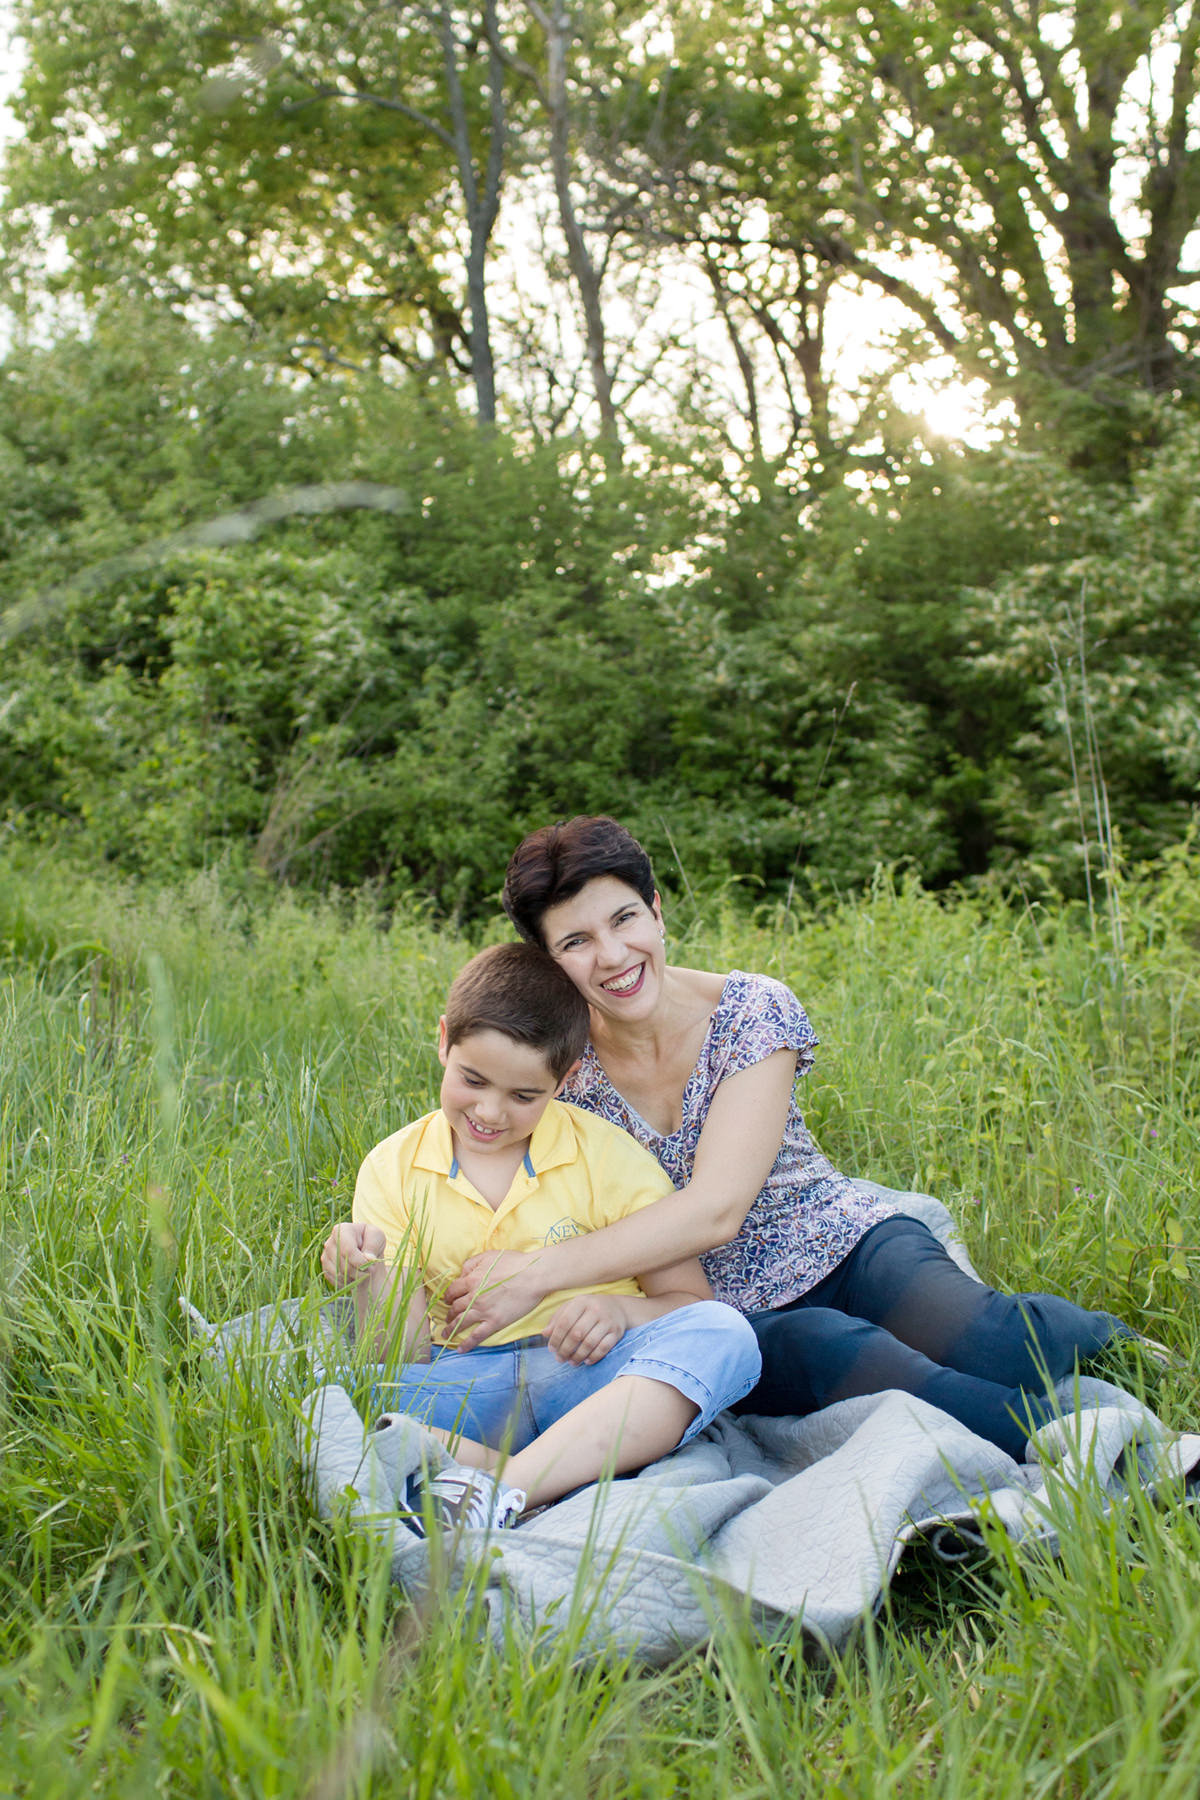 family-photographer-st-louis-park-location-city-71Profirovic70_051018